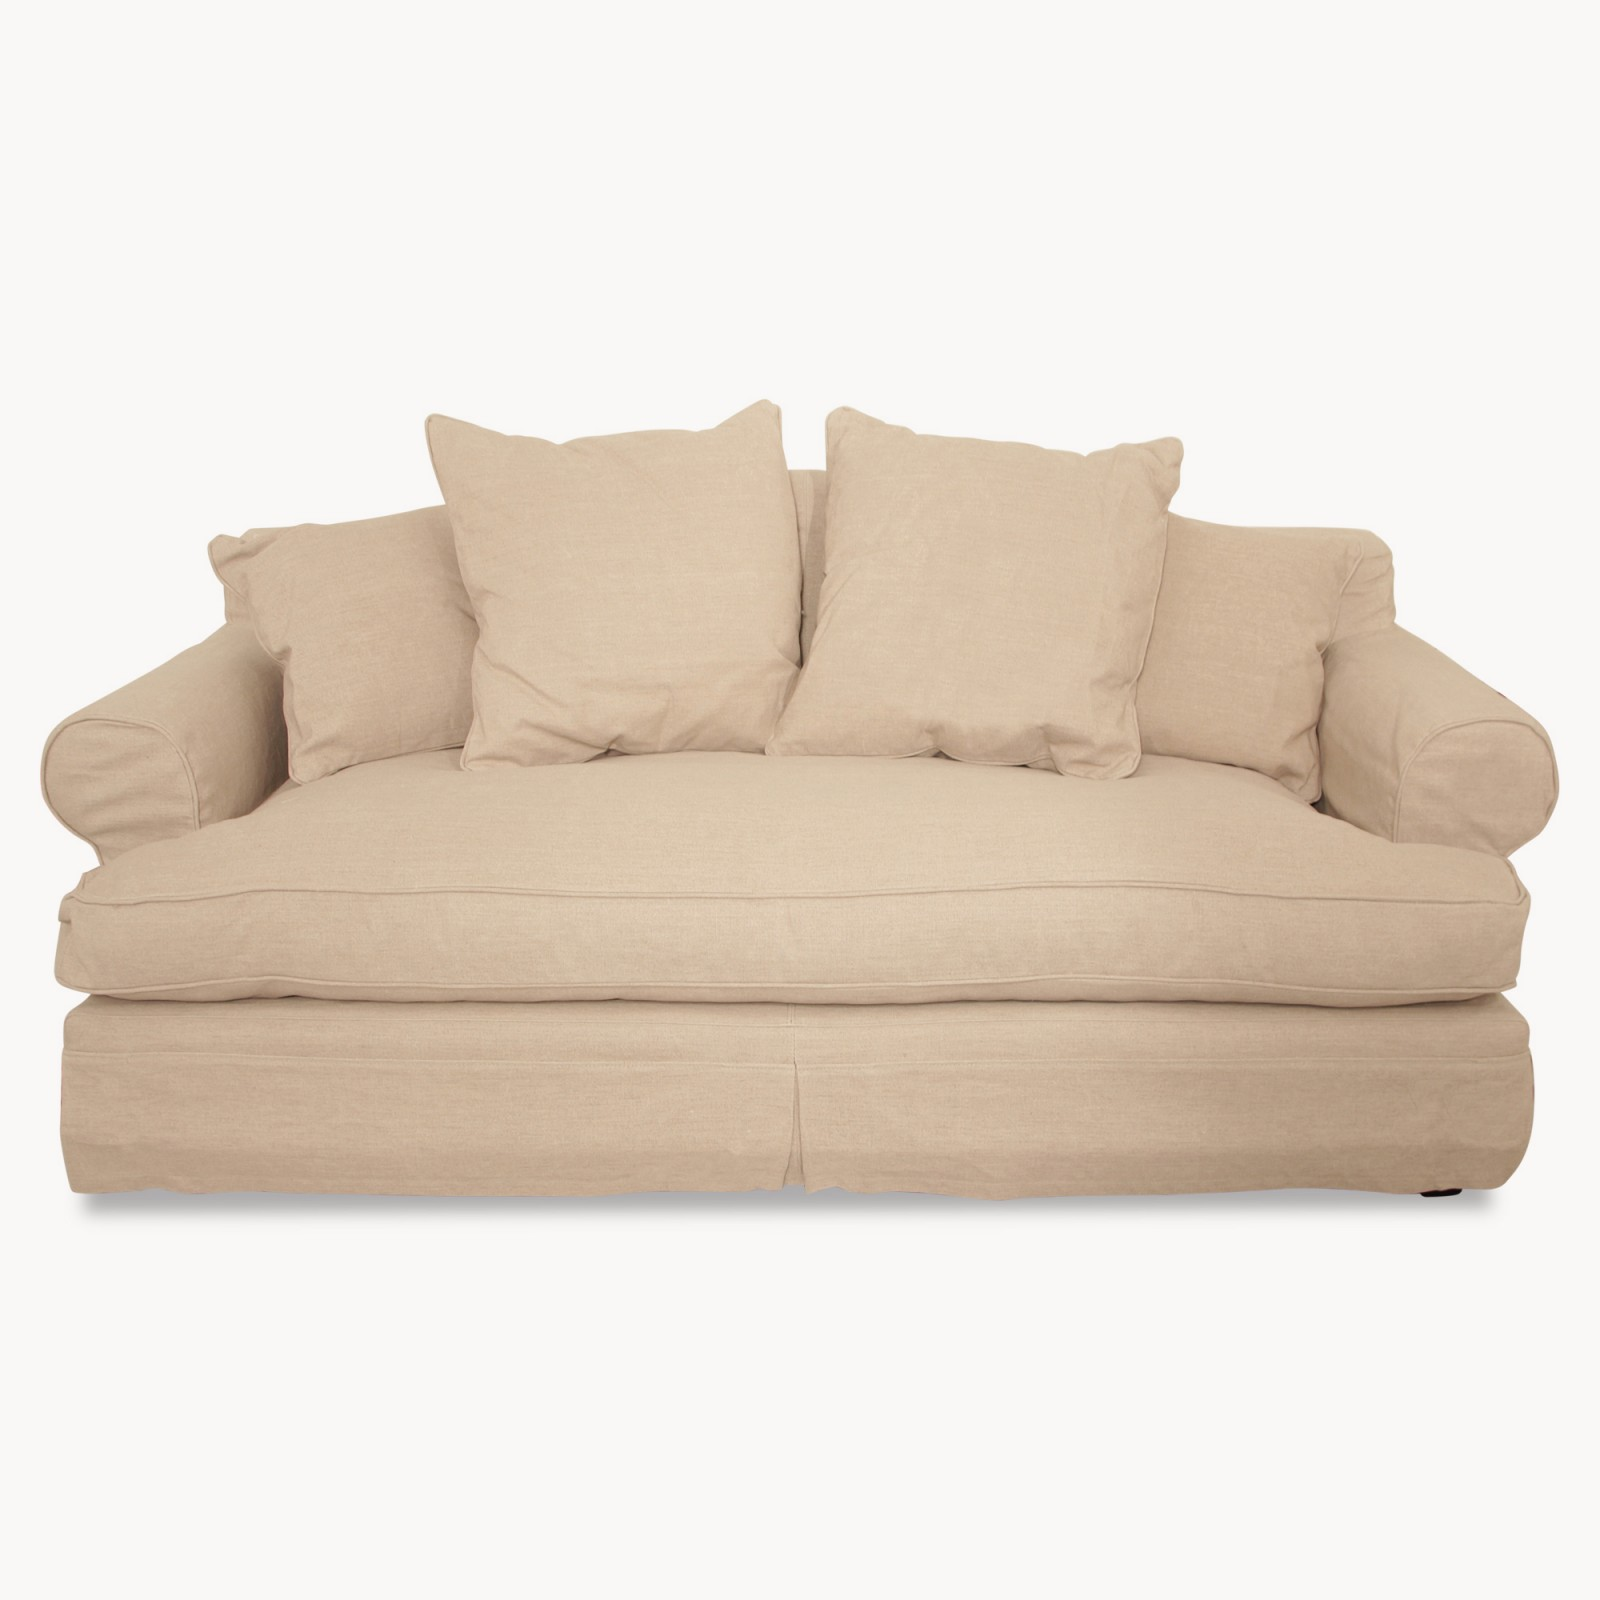 Ow kingswood natural linen 2 5 seater sofa